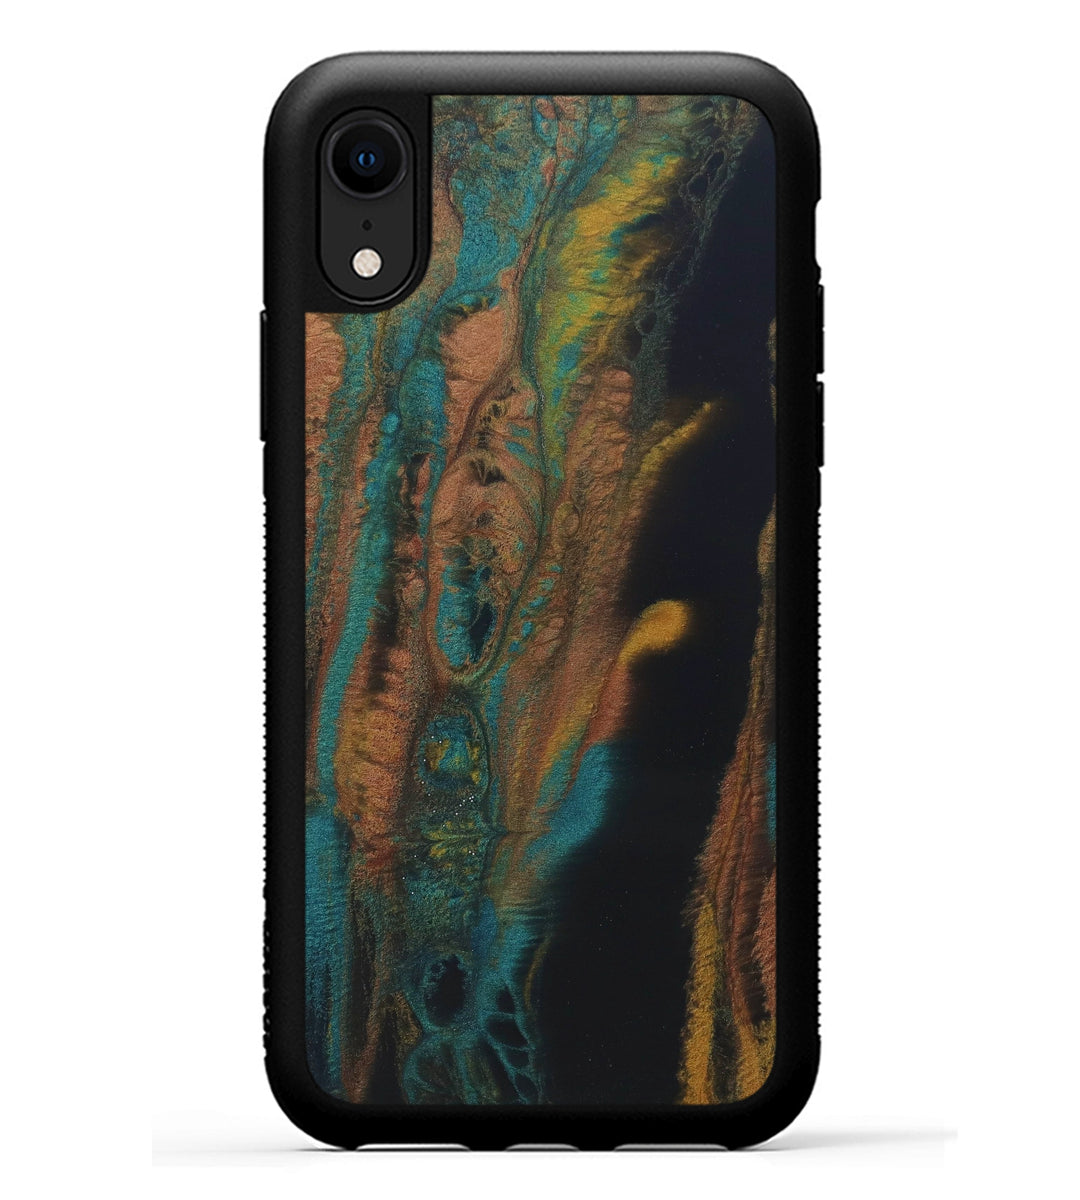 iPhone Xr ResinArt Phone Case - Coursdev (Teal & Gold, 347660)